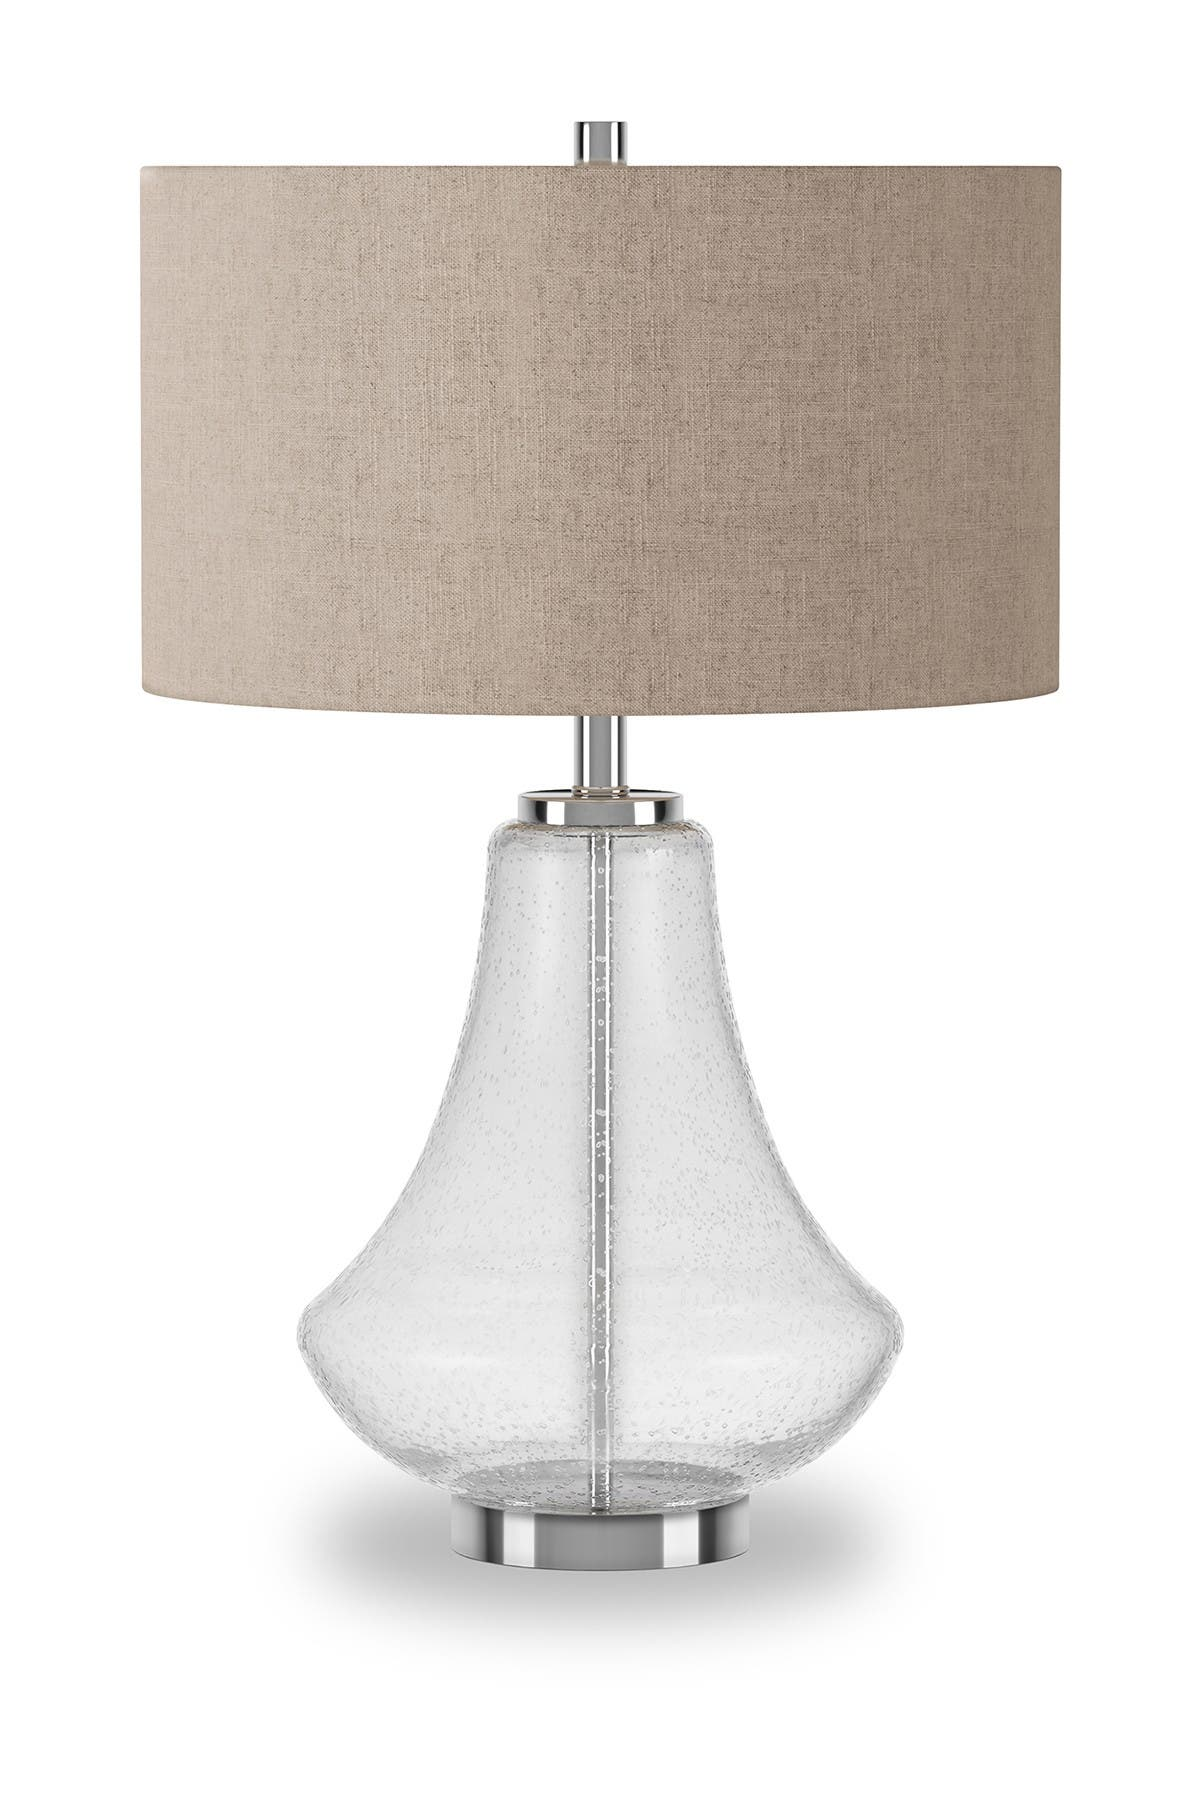 Image of Addison and Lane Lagos Table Lamp - Polished Nickel & Seeded Glass with Linen Shade